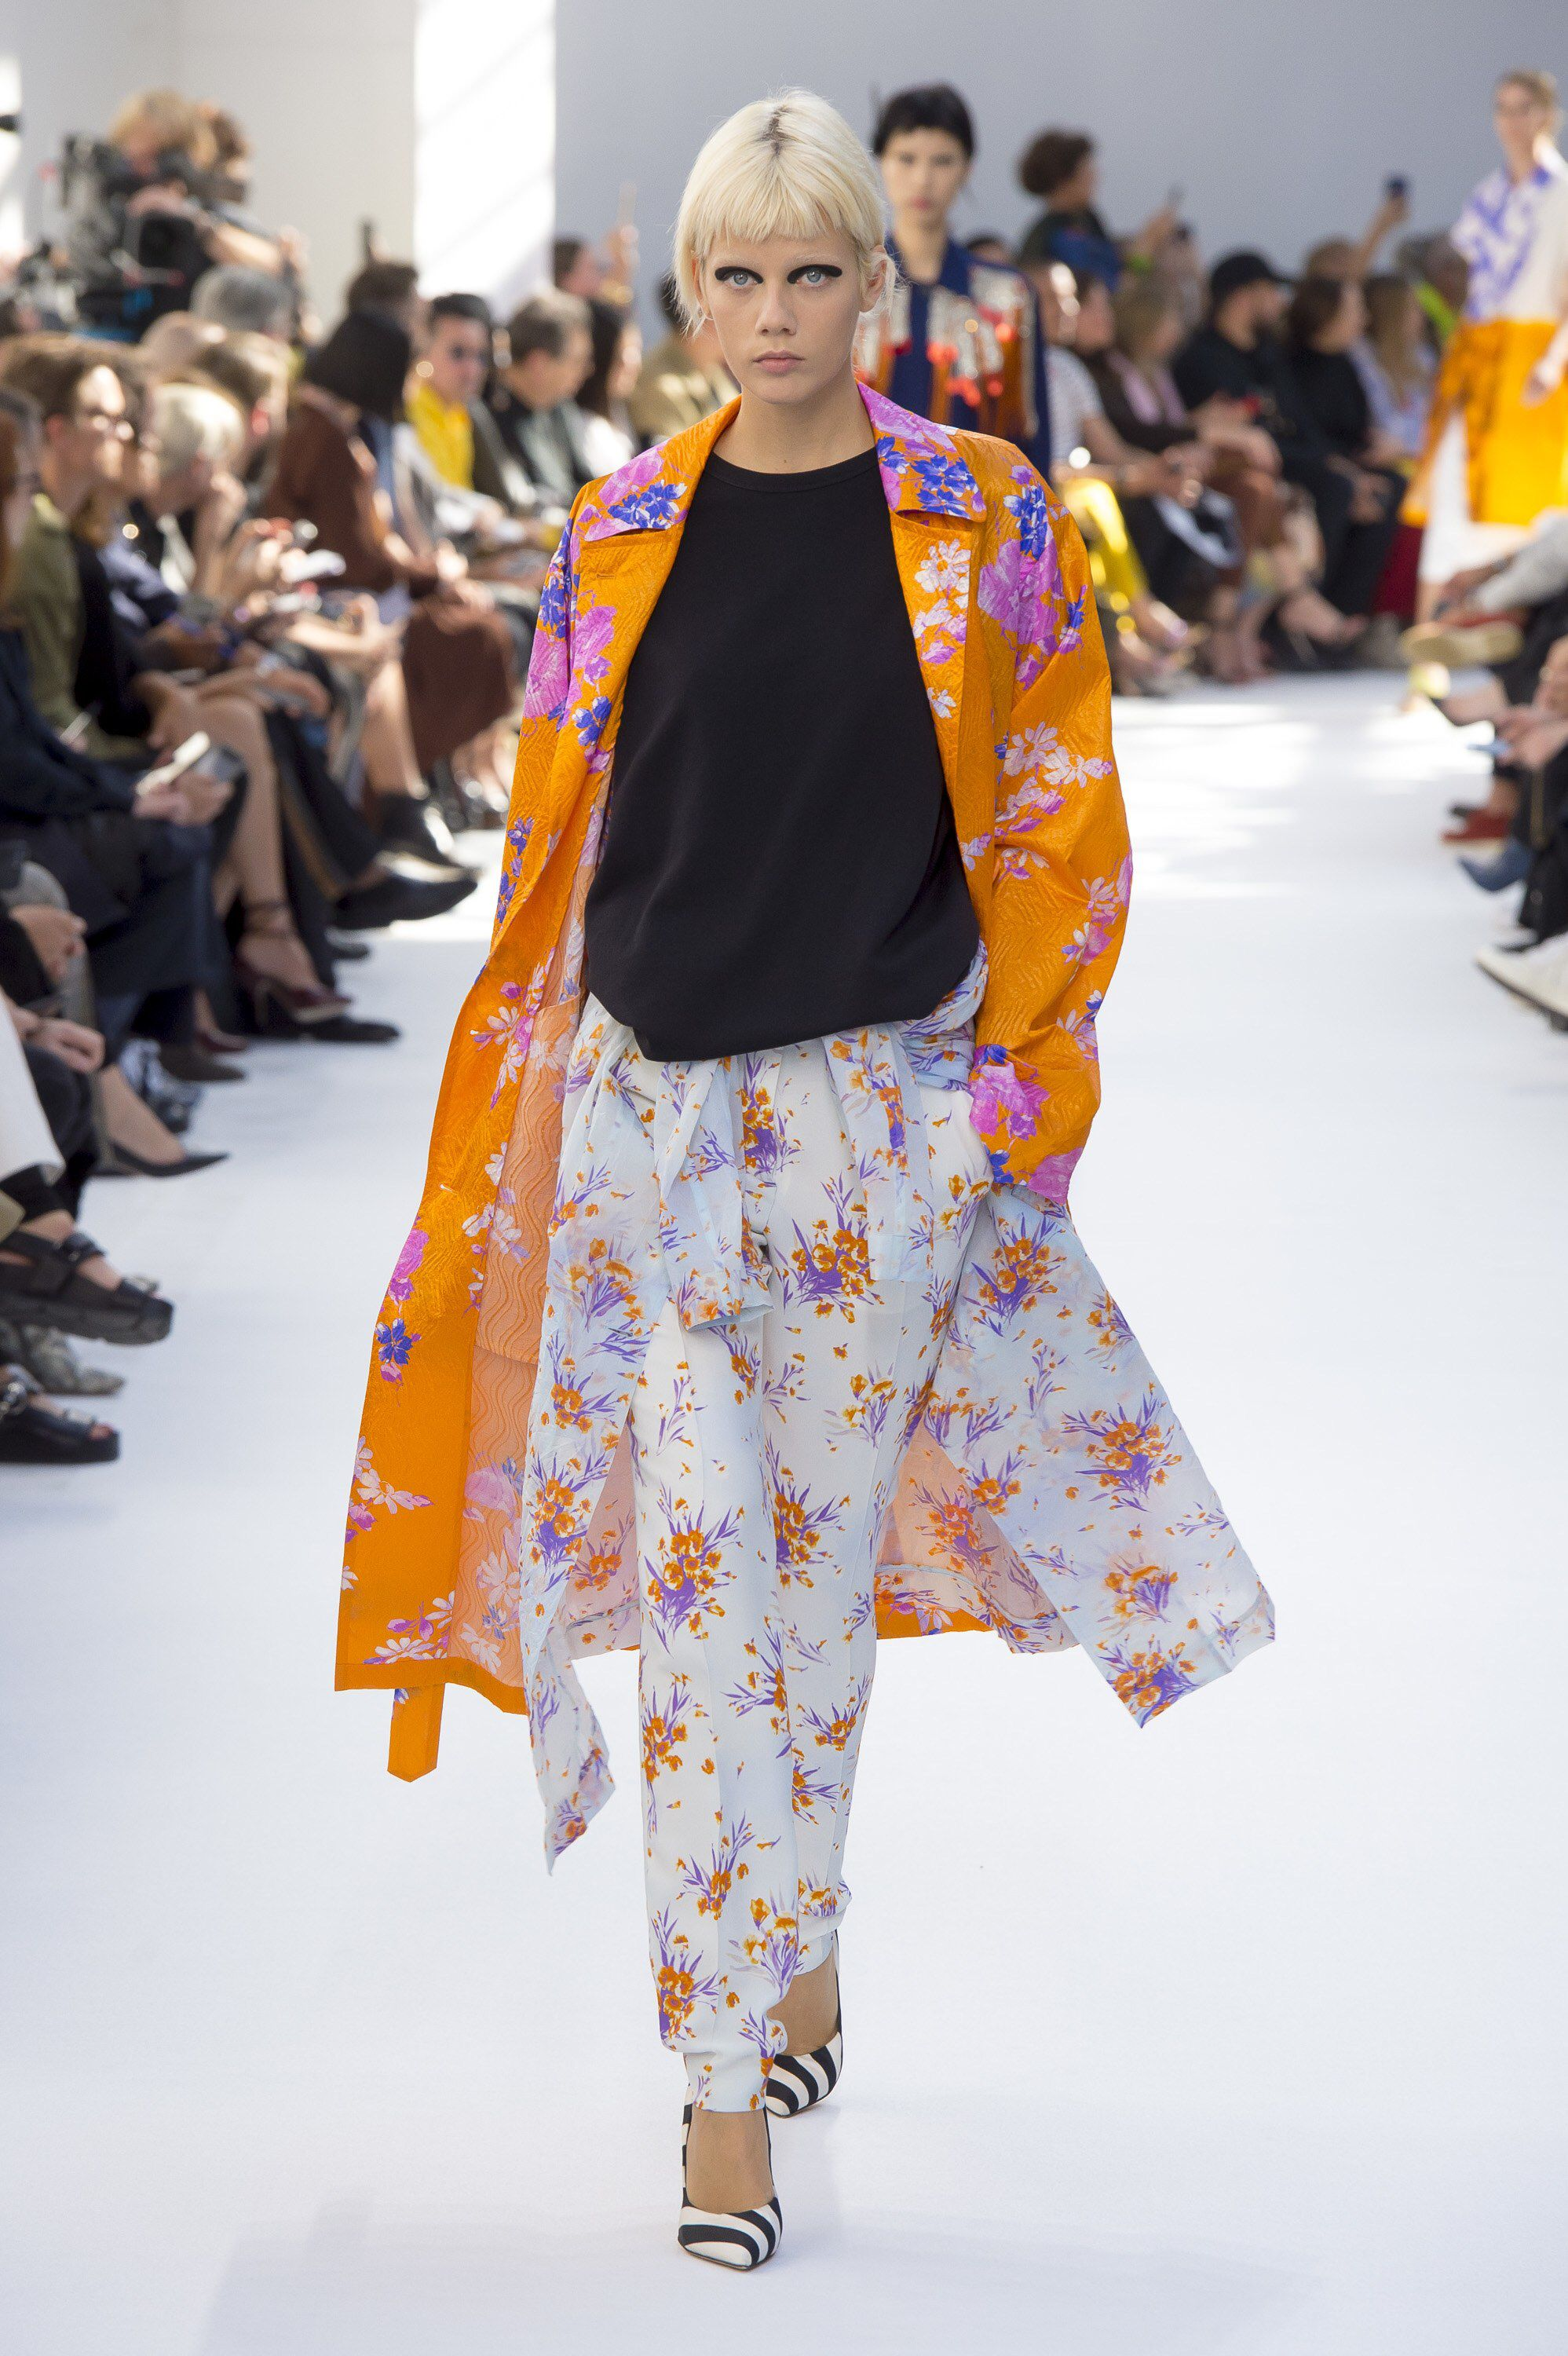 Dries Van Noten Spring 2019 Ready to Wear Fashion Show in